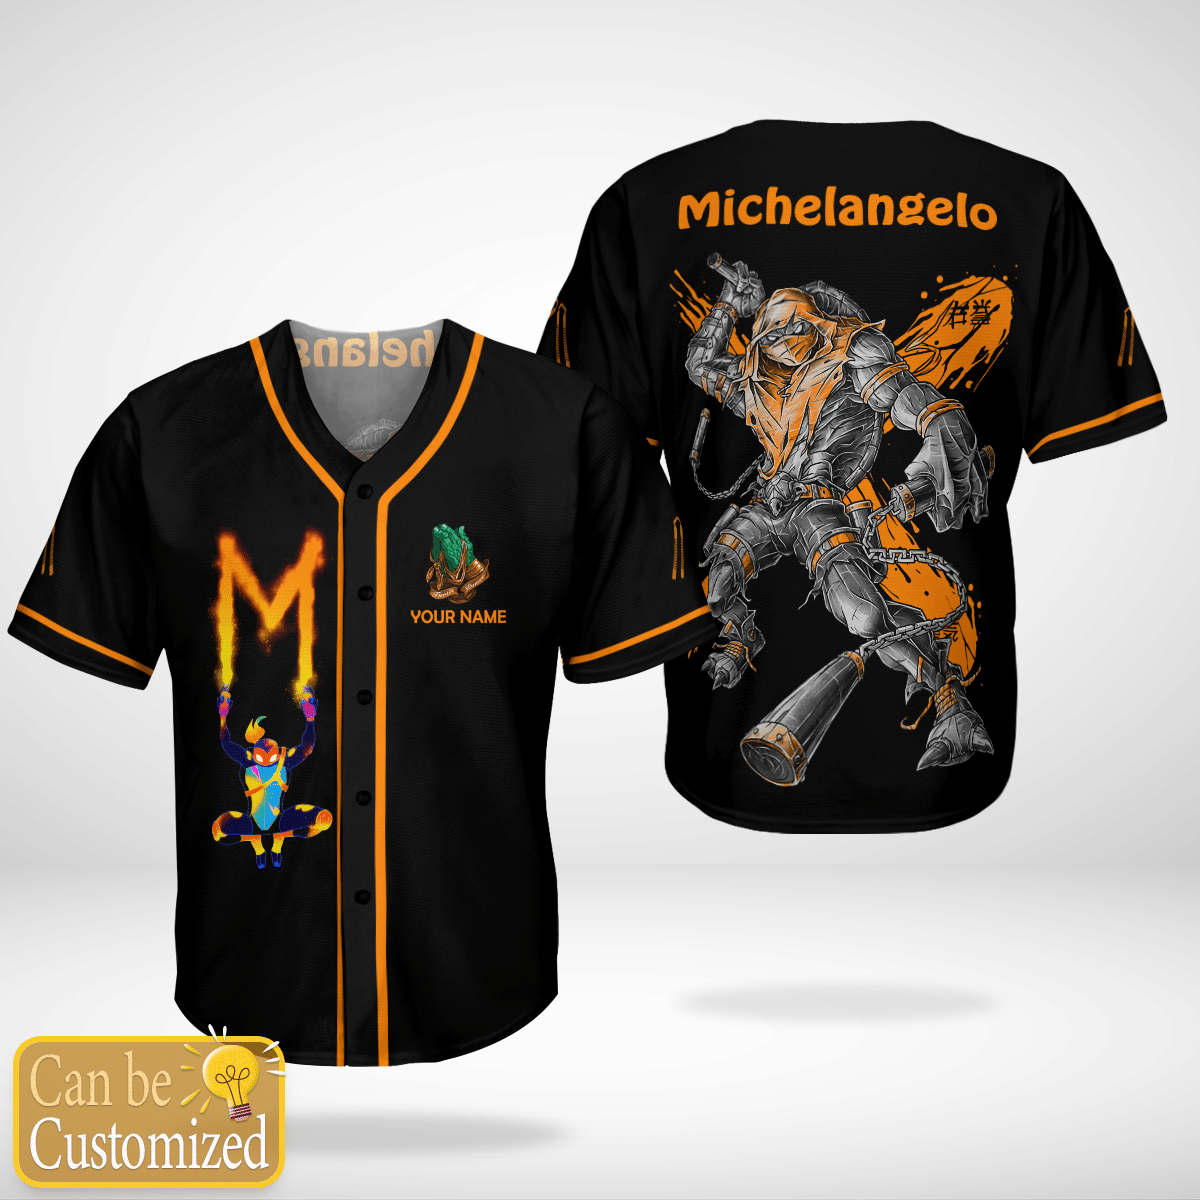 Michelangelo Mikey Custom Name Baseball Jersey - LIMITED EDITION